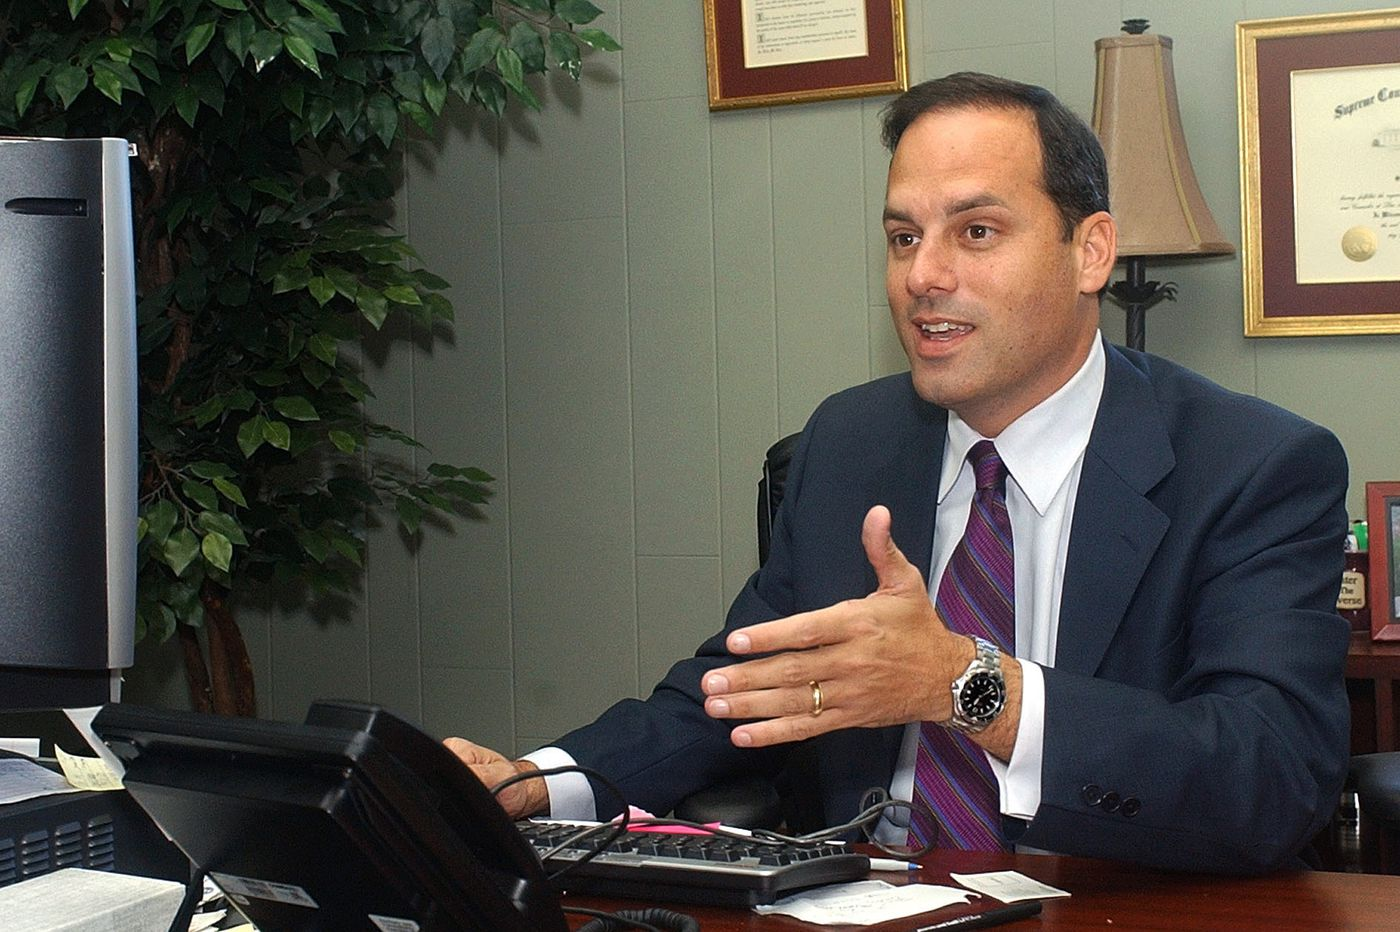 FBI probe leads to charges against Florida city commissioner